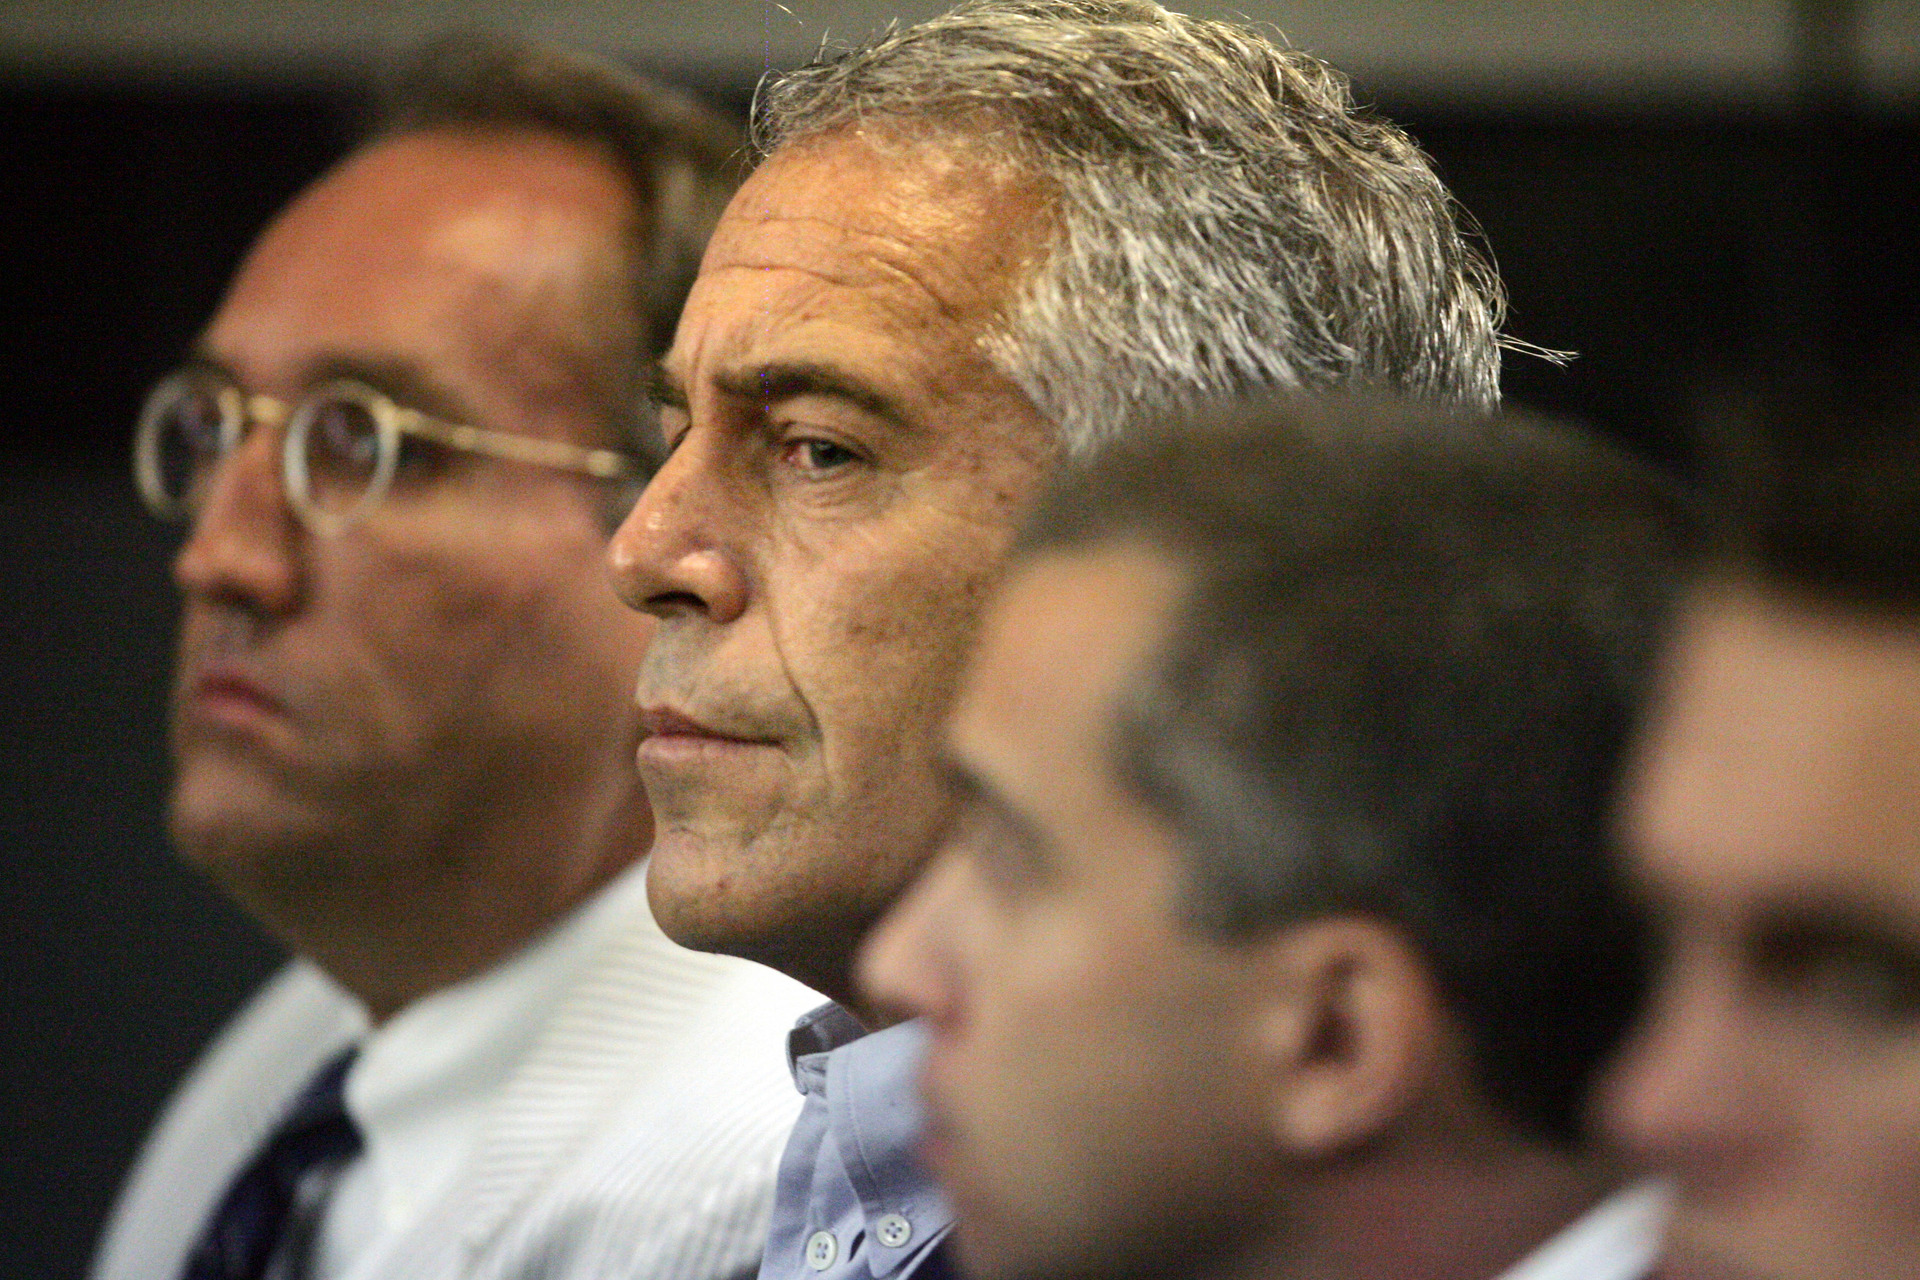 How Jeffrey Epstein may have gamed the system from beyond the grave